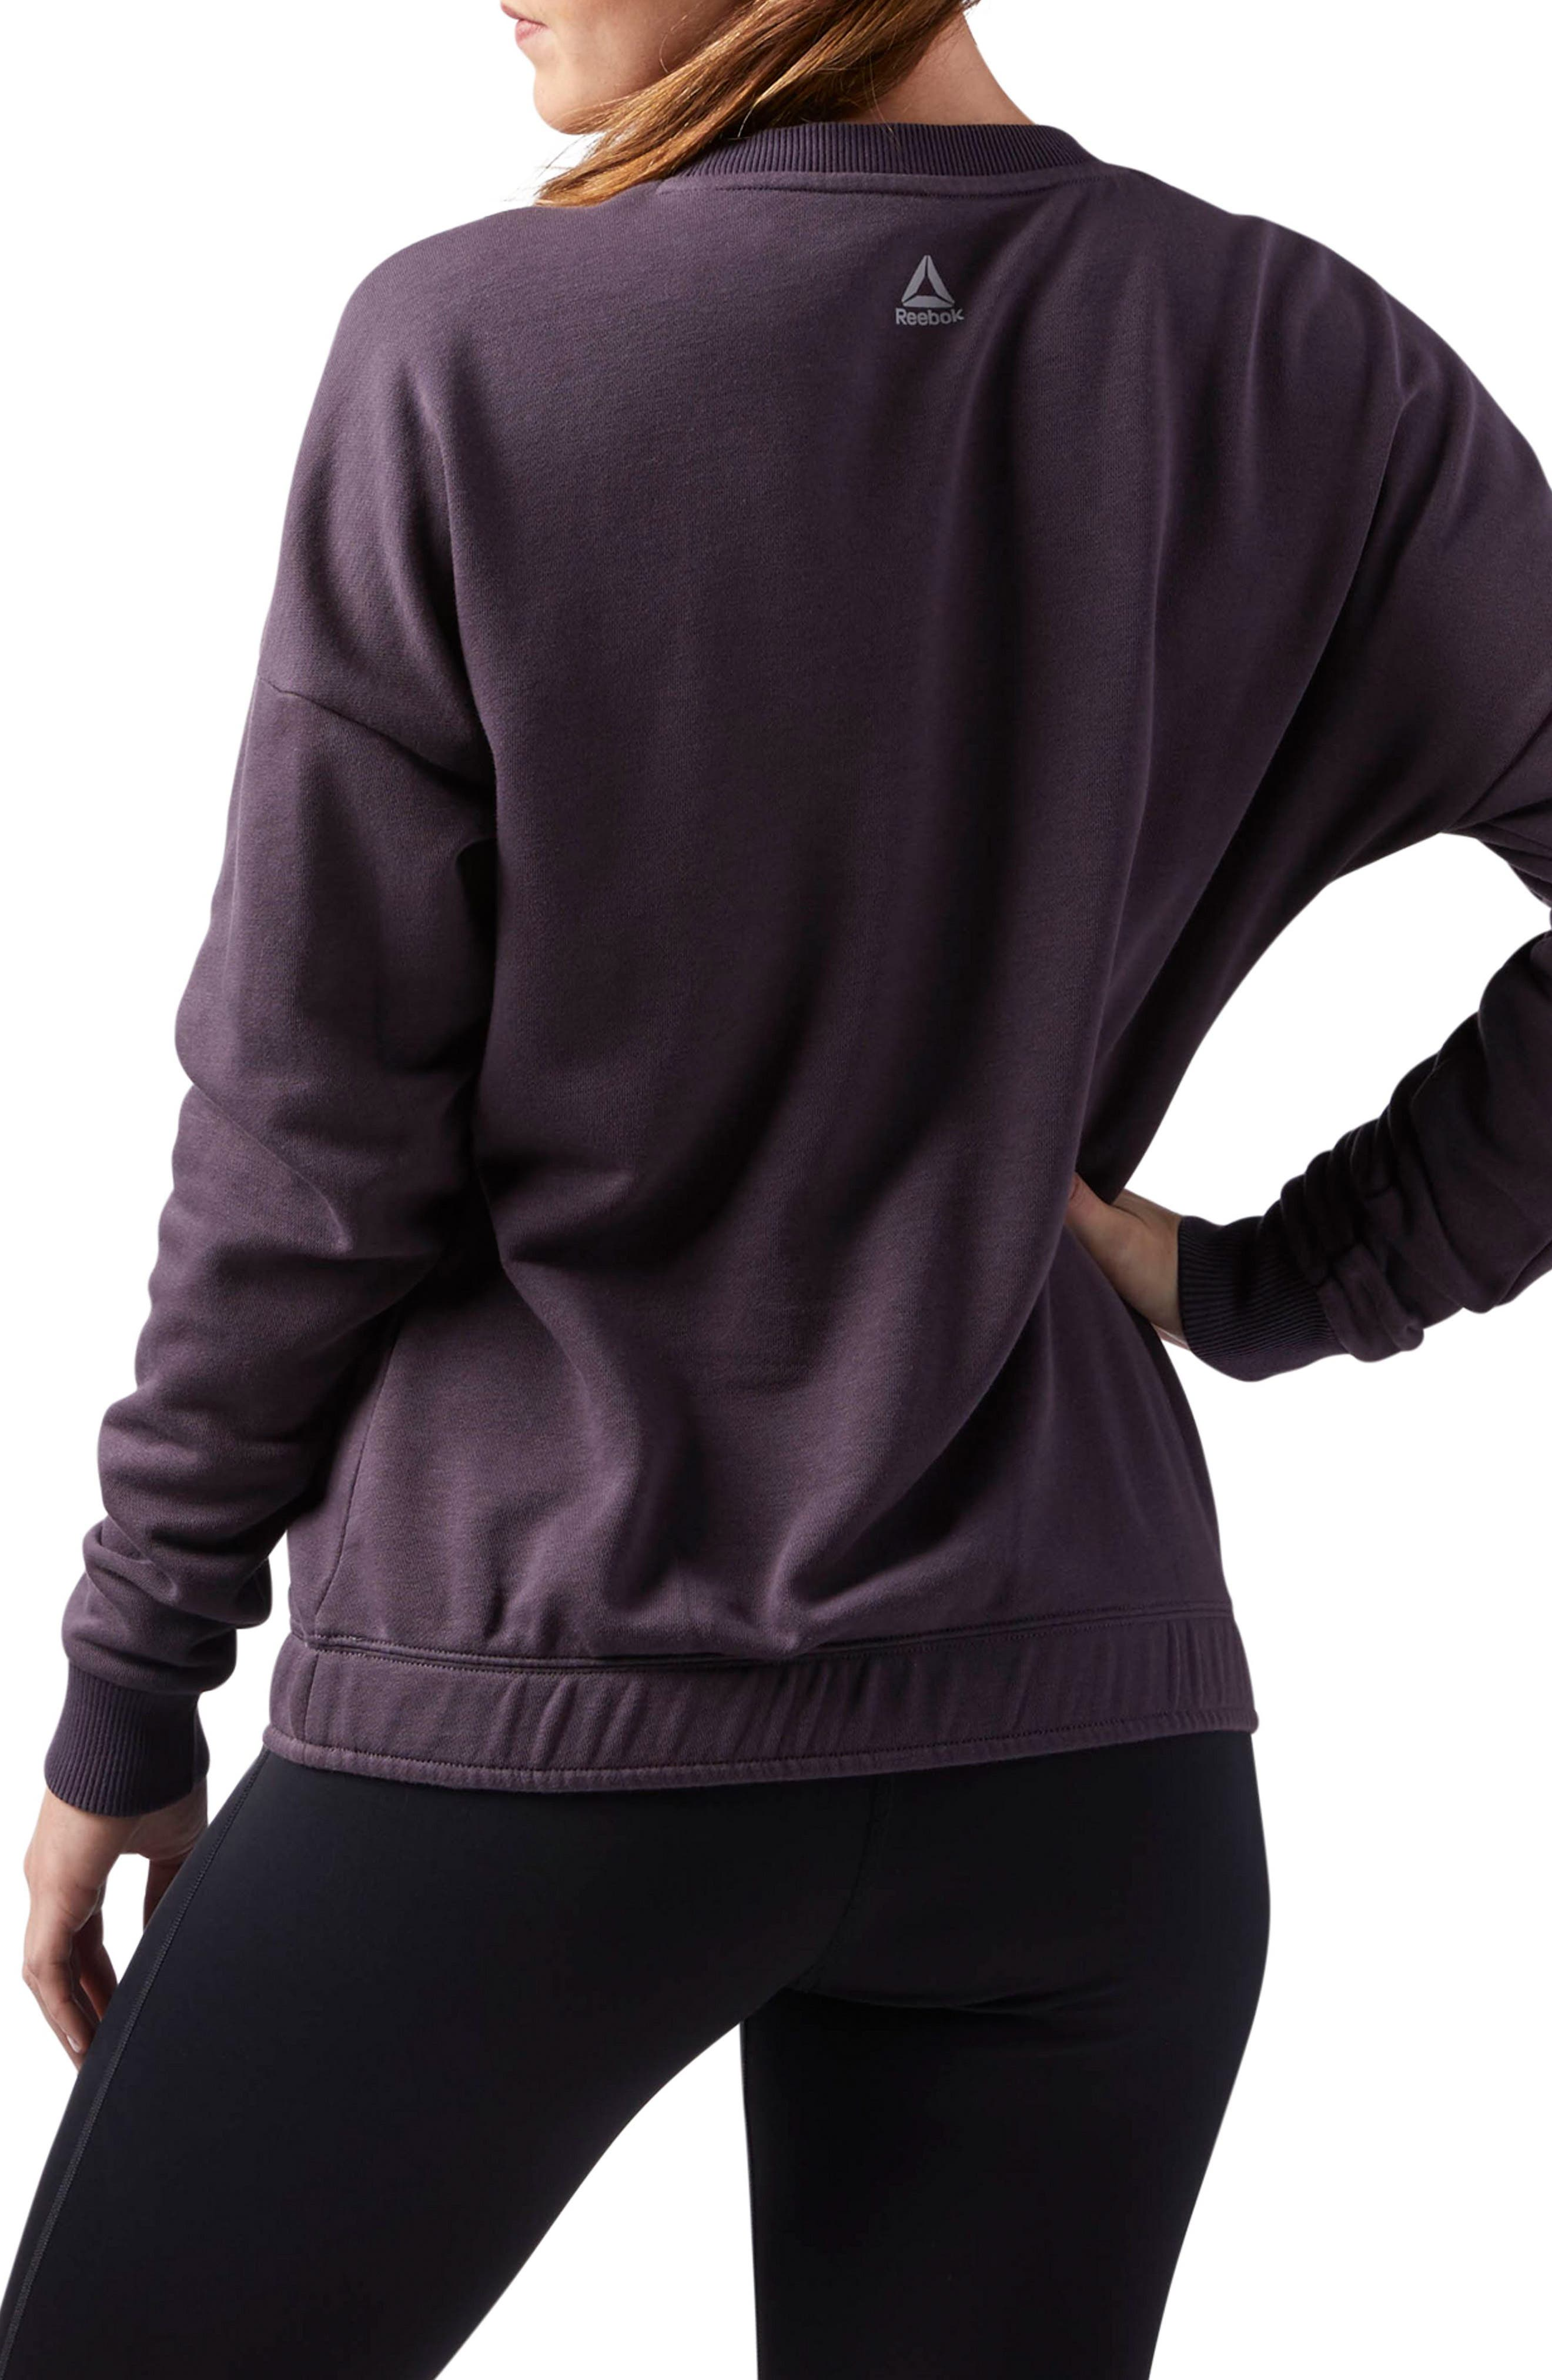 Elements Washed Sweatshirt,                             Alternate thumbnail 2, color,                             501